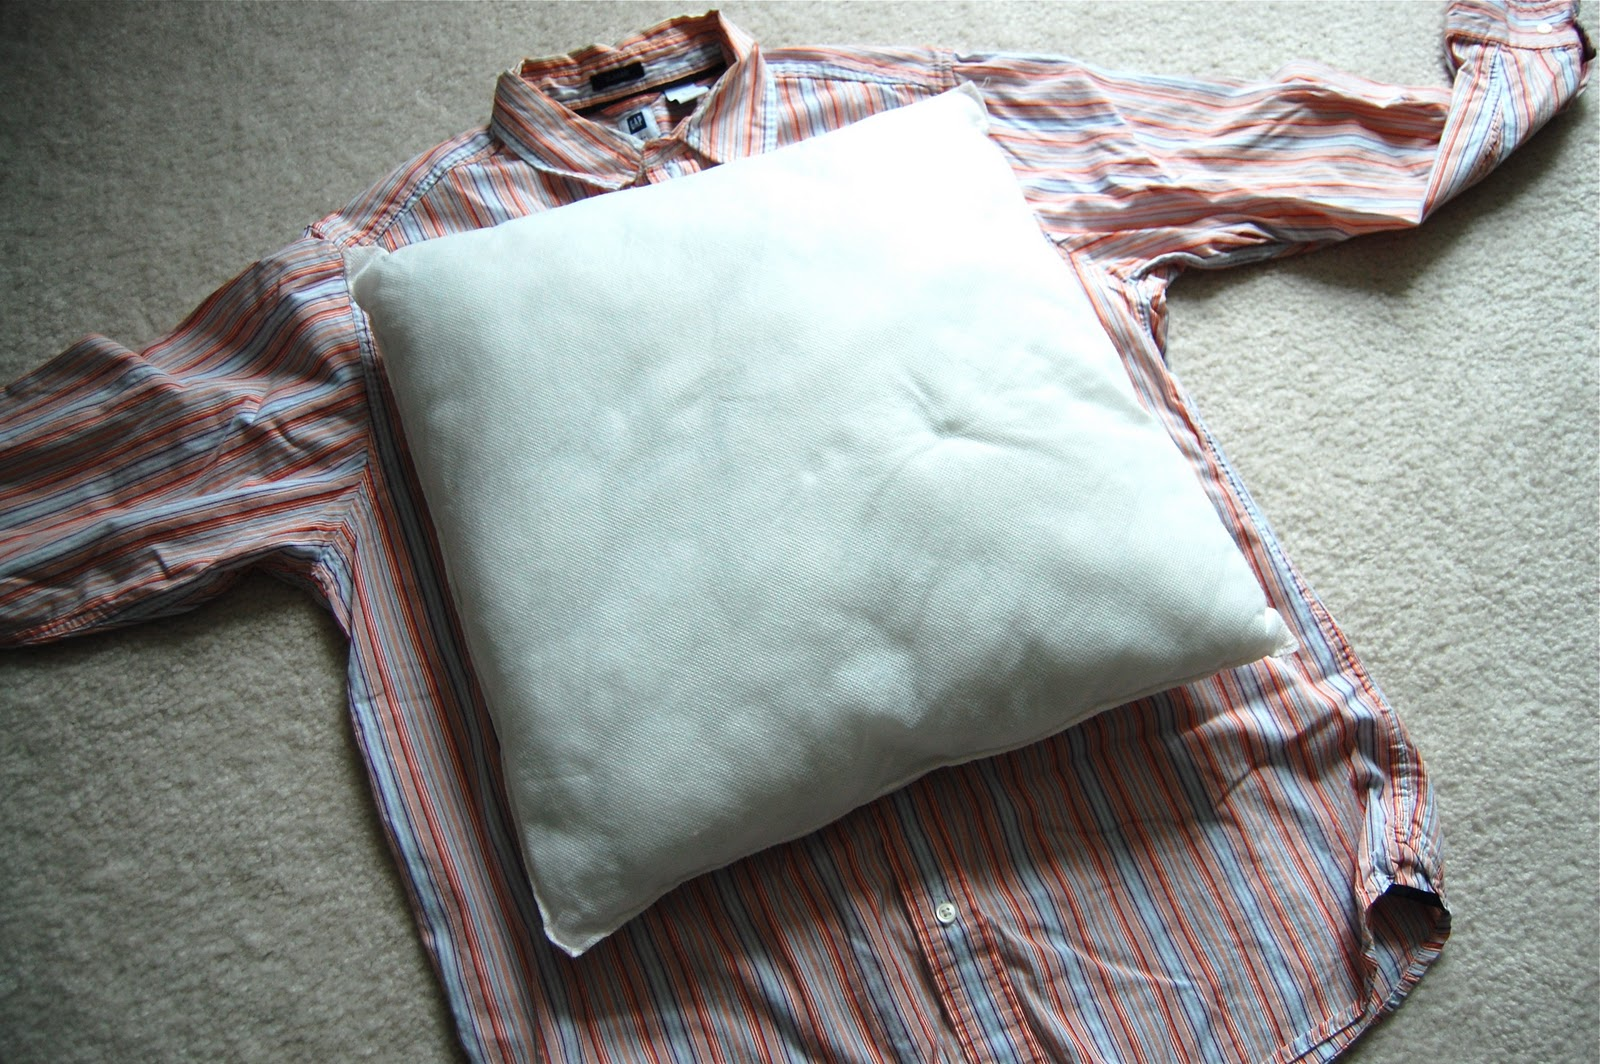 1.) Lay Your Pillow Down On The Shirt Under The Collar